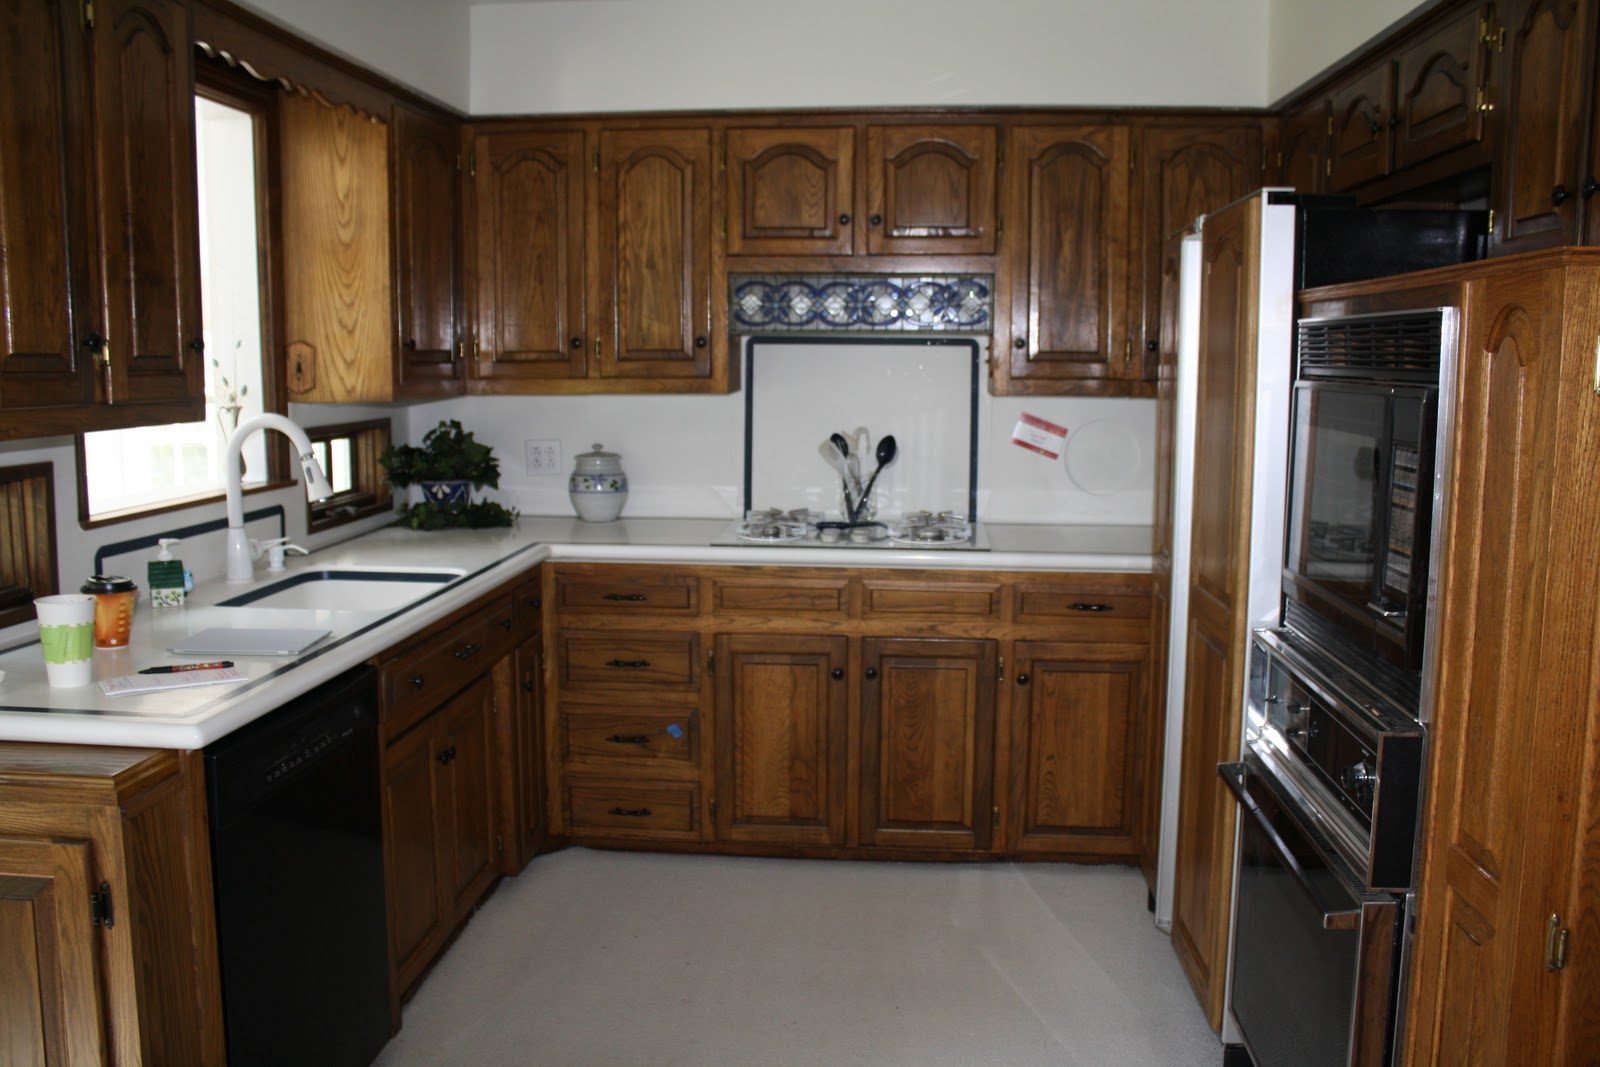 Updating a home on a budget julie blanner for Painting kitchen cabinets